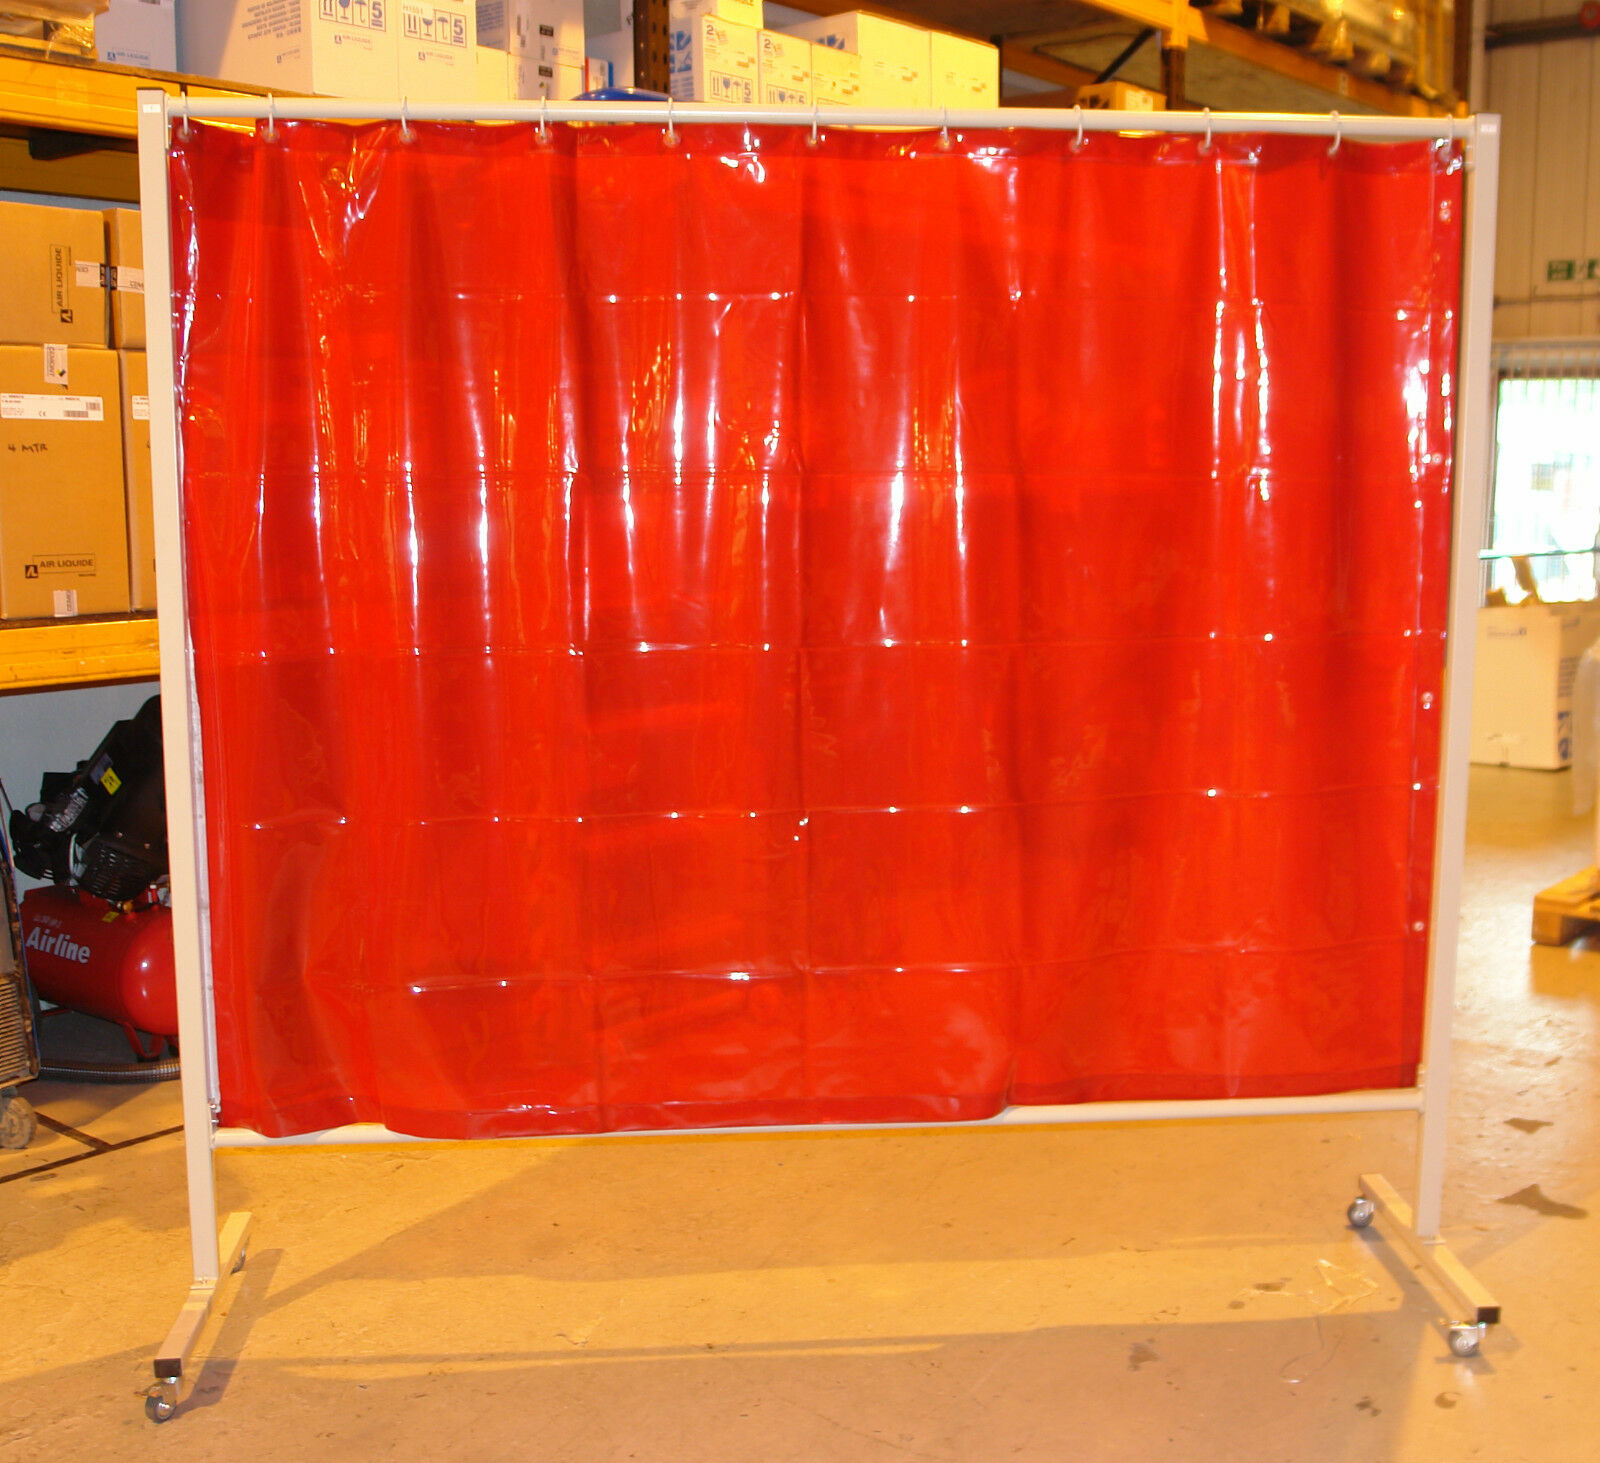 frames custom lacquer curtain can we weldingcurtains coated index welding smooth features size weight your manufacture steel galvanized specification light any flash touch protection in to screens